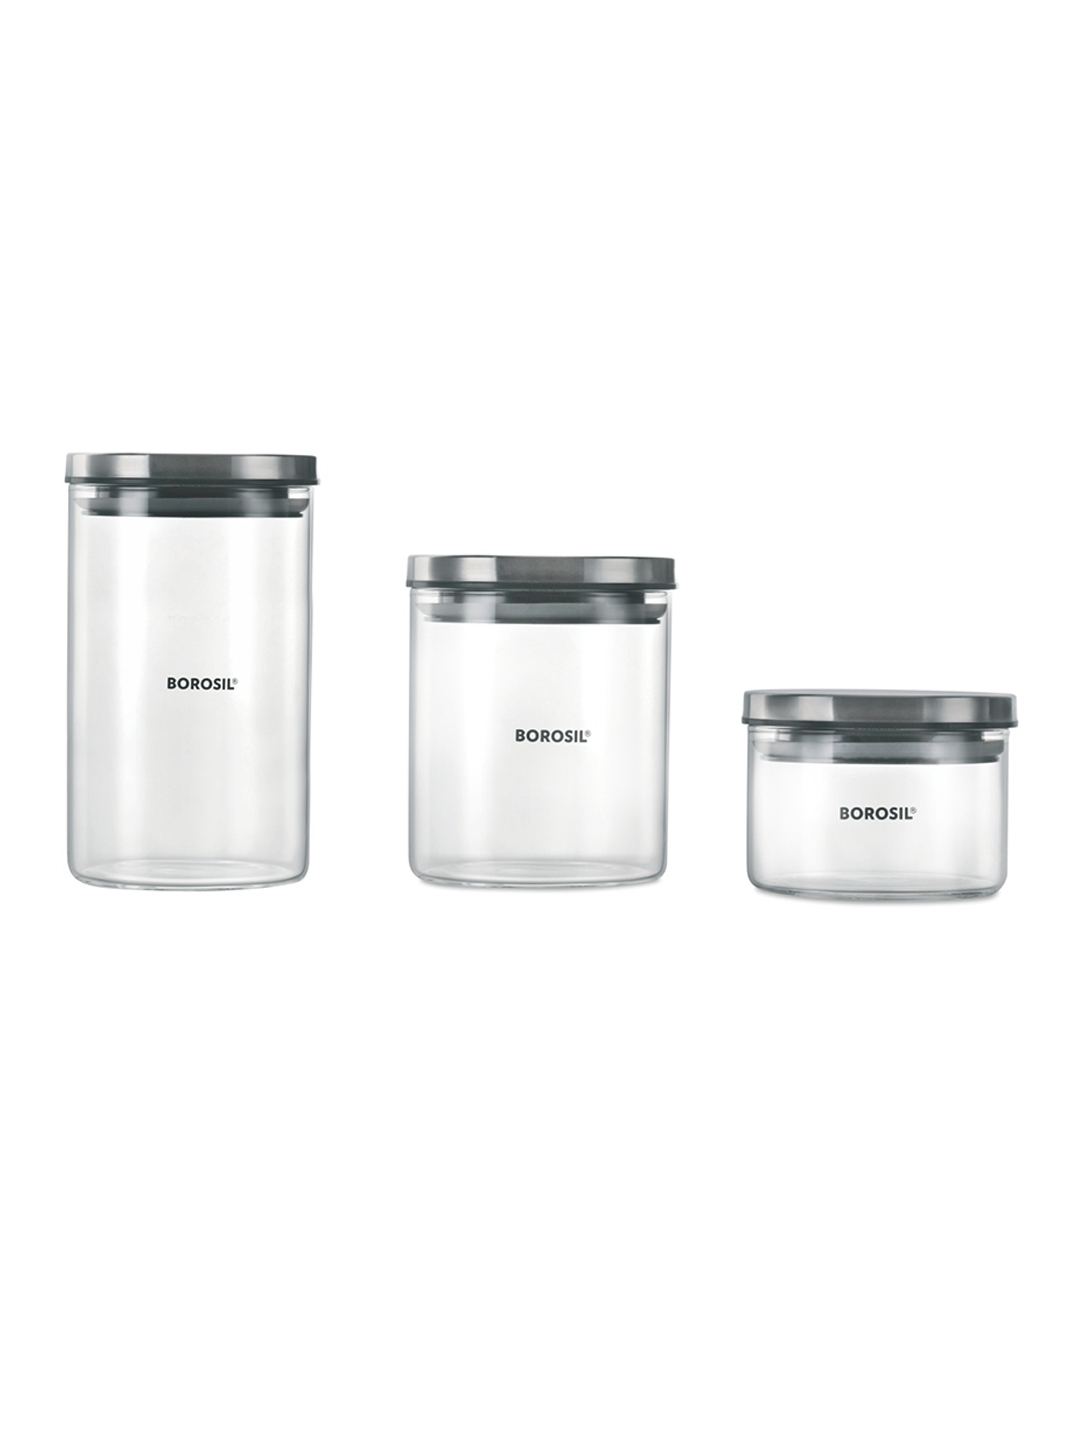 BOROSIL Transparent   Grey Set of 3 Borosilicate Glass Storage Jar Containers With Lid